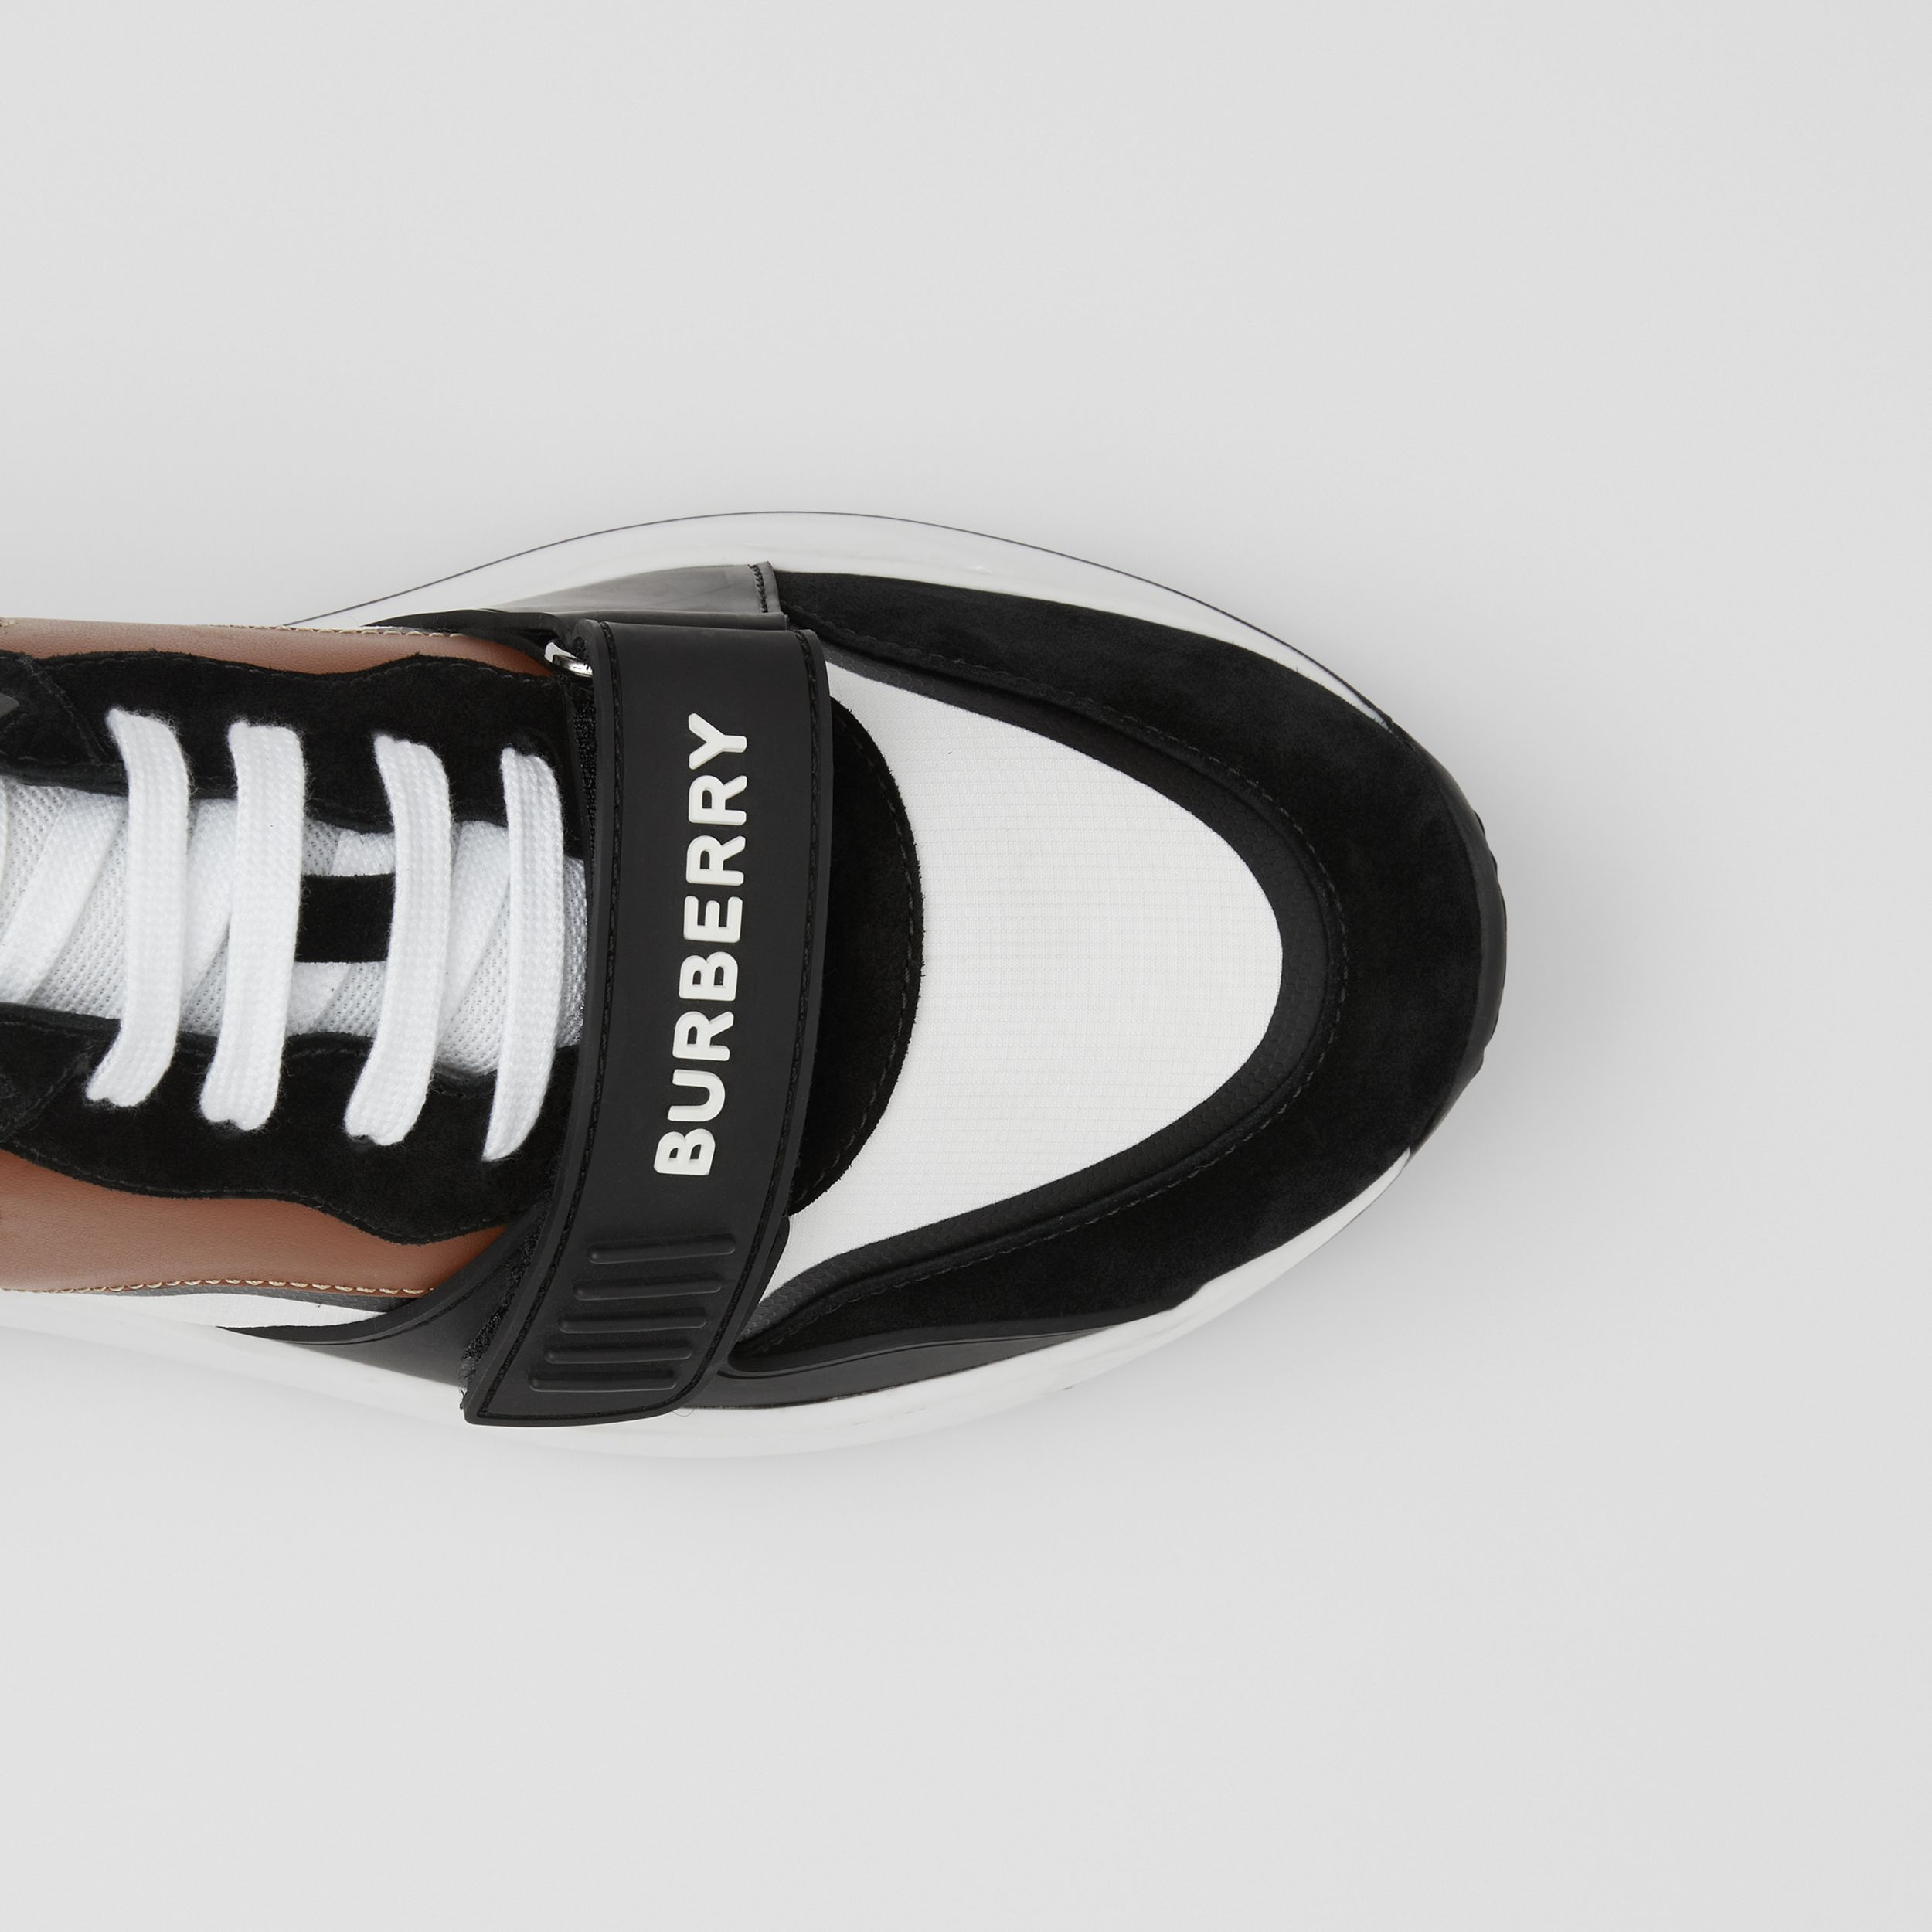 Leather, Suede and Vintage Check Sneakers in Black/archive Beige - Men | Burberry Canada - 2